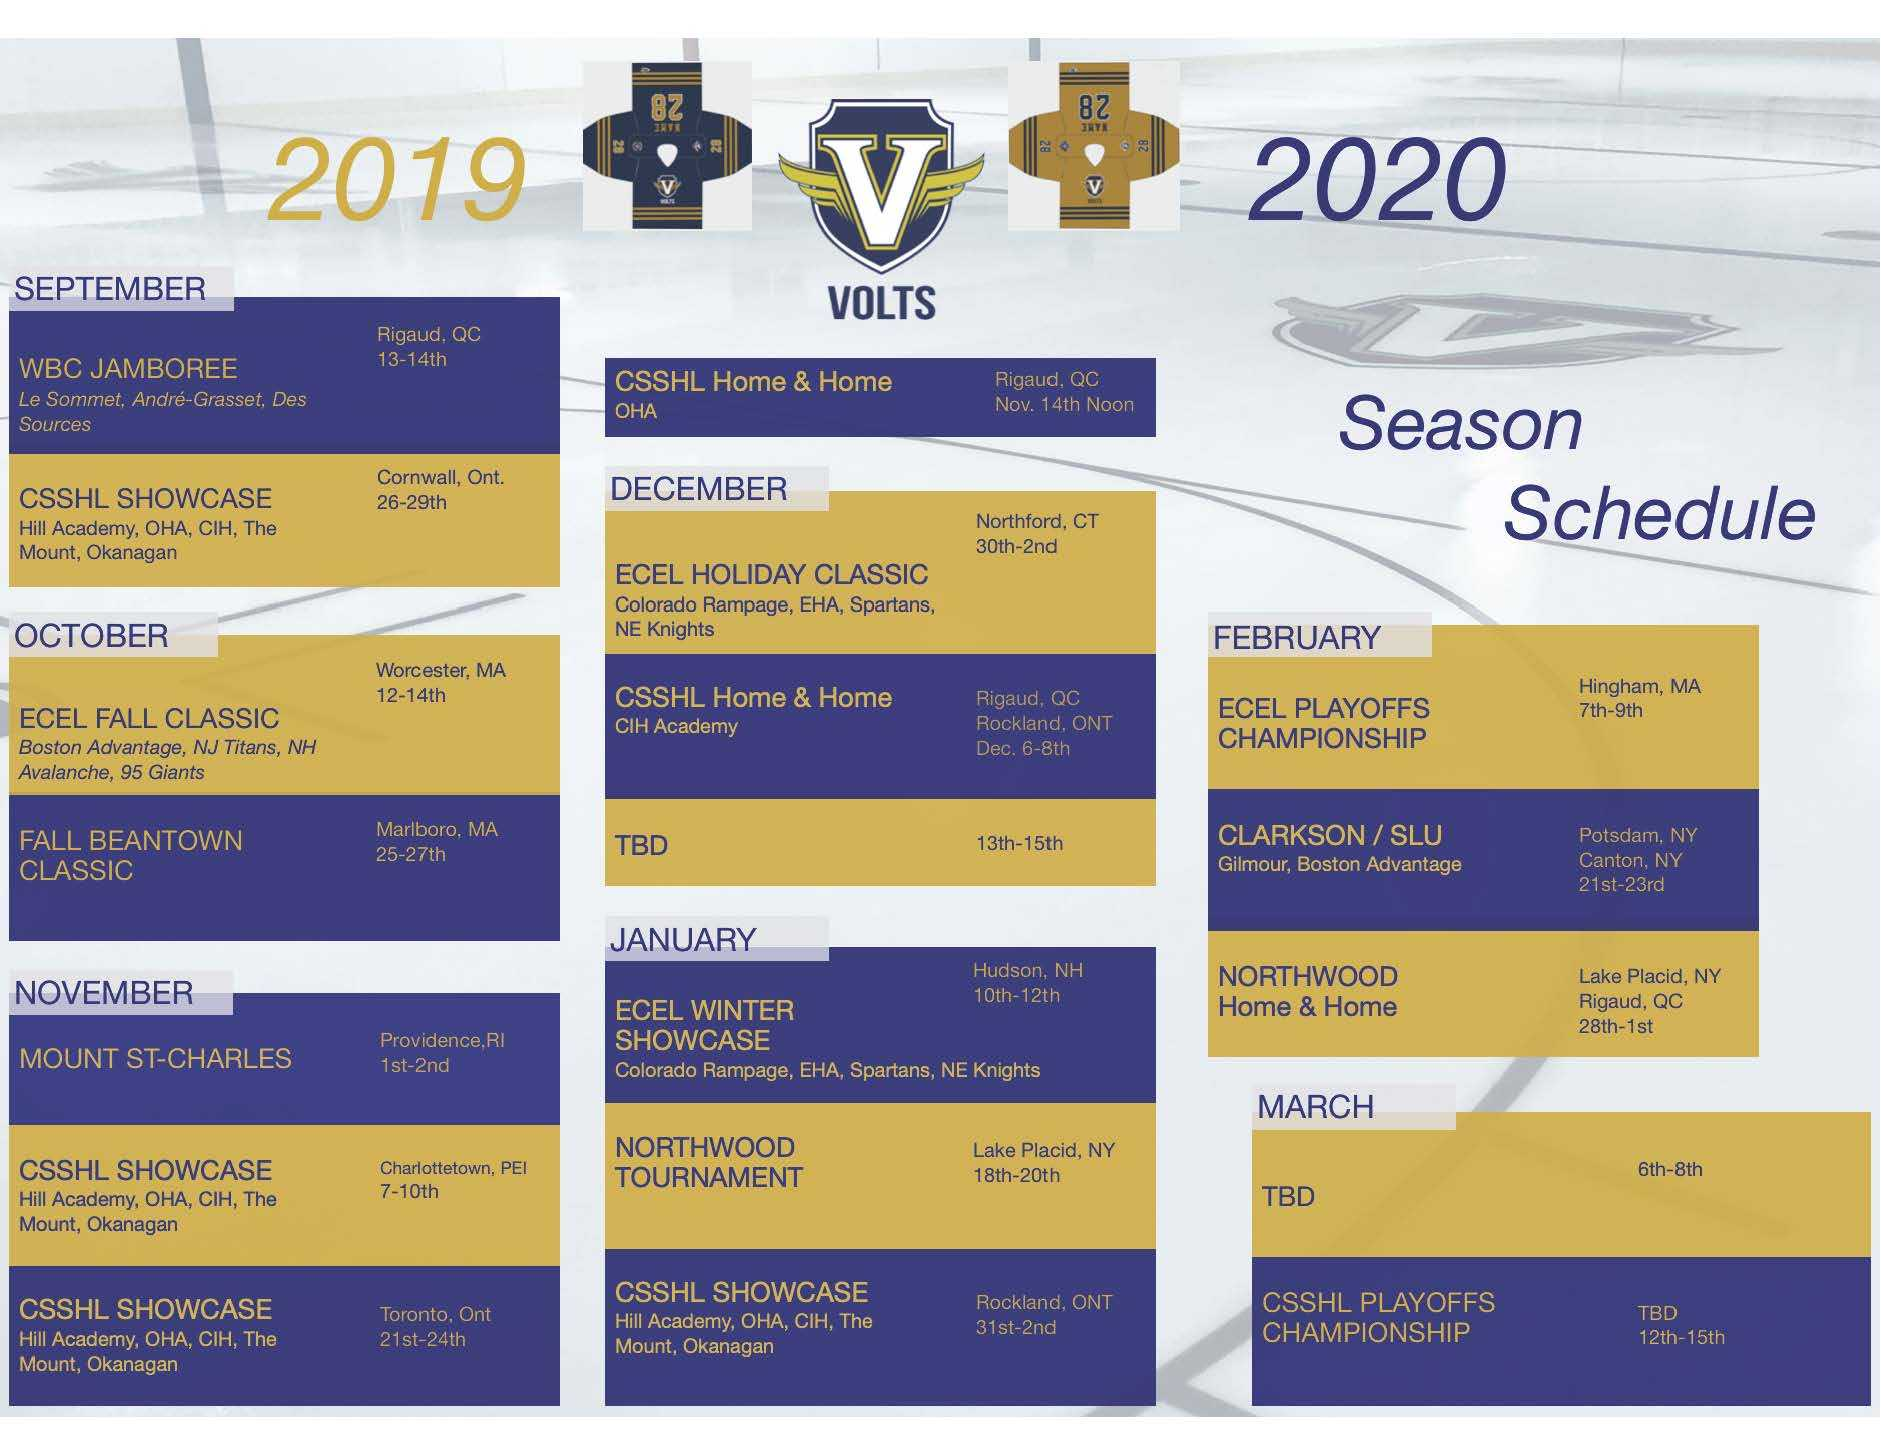 2WBC-Volts-Season-Schedule-2019-2020-2019.jpg#asset:2619